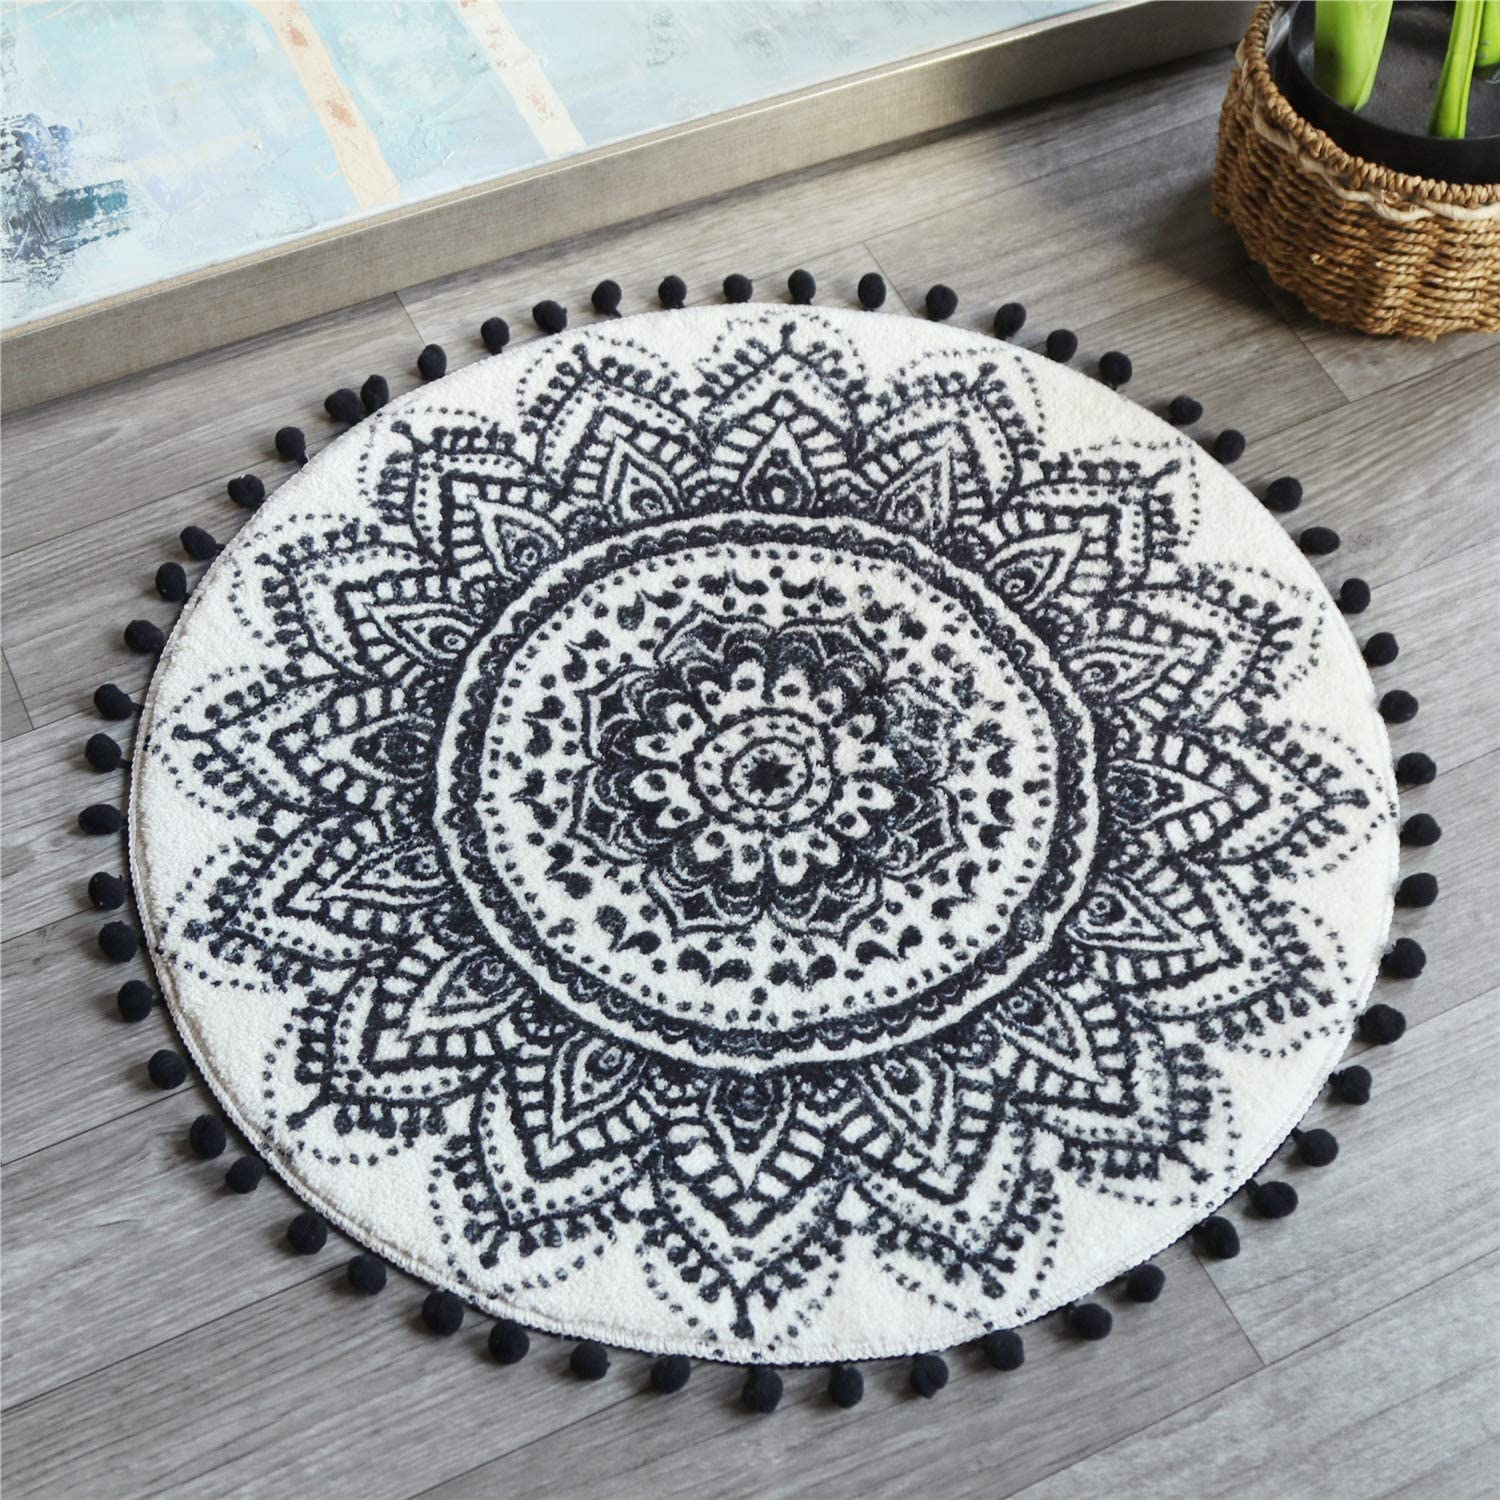 Buy Uphome 20ft Round Small Area Rug with Chic Pom Pom Fringe ...